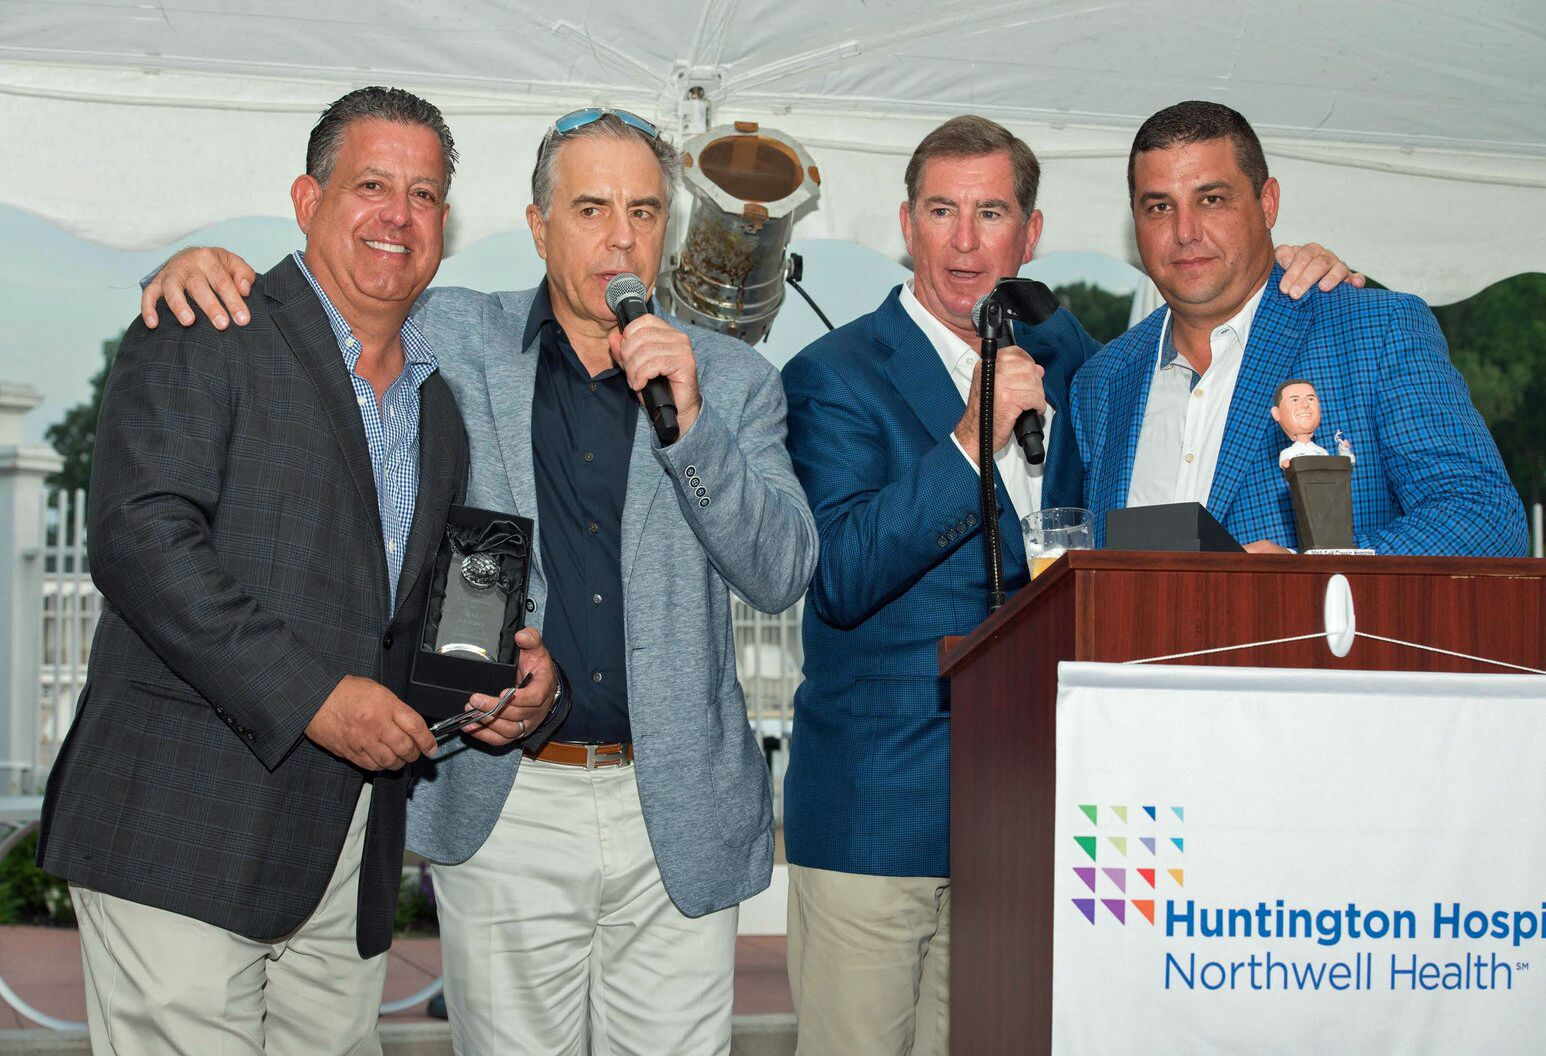 At Huntington Hospital's Golf Classic. From left — co-honoree Sal Ferro, Alure Home Improvements; committee member Douglas Partrick; committee chair John Kean and co-honoree Kris Amplo, JC Steel